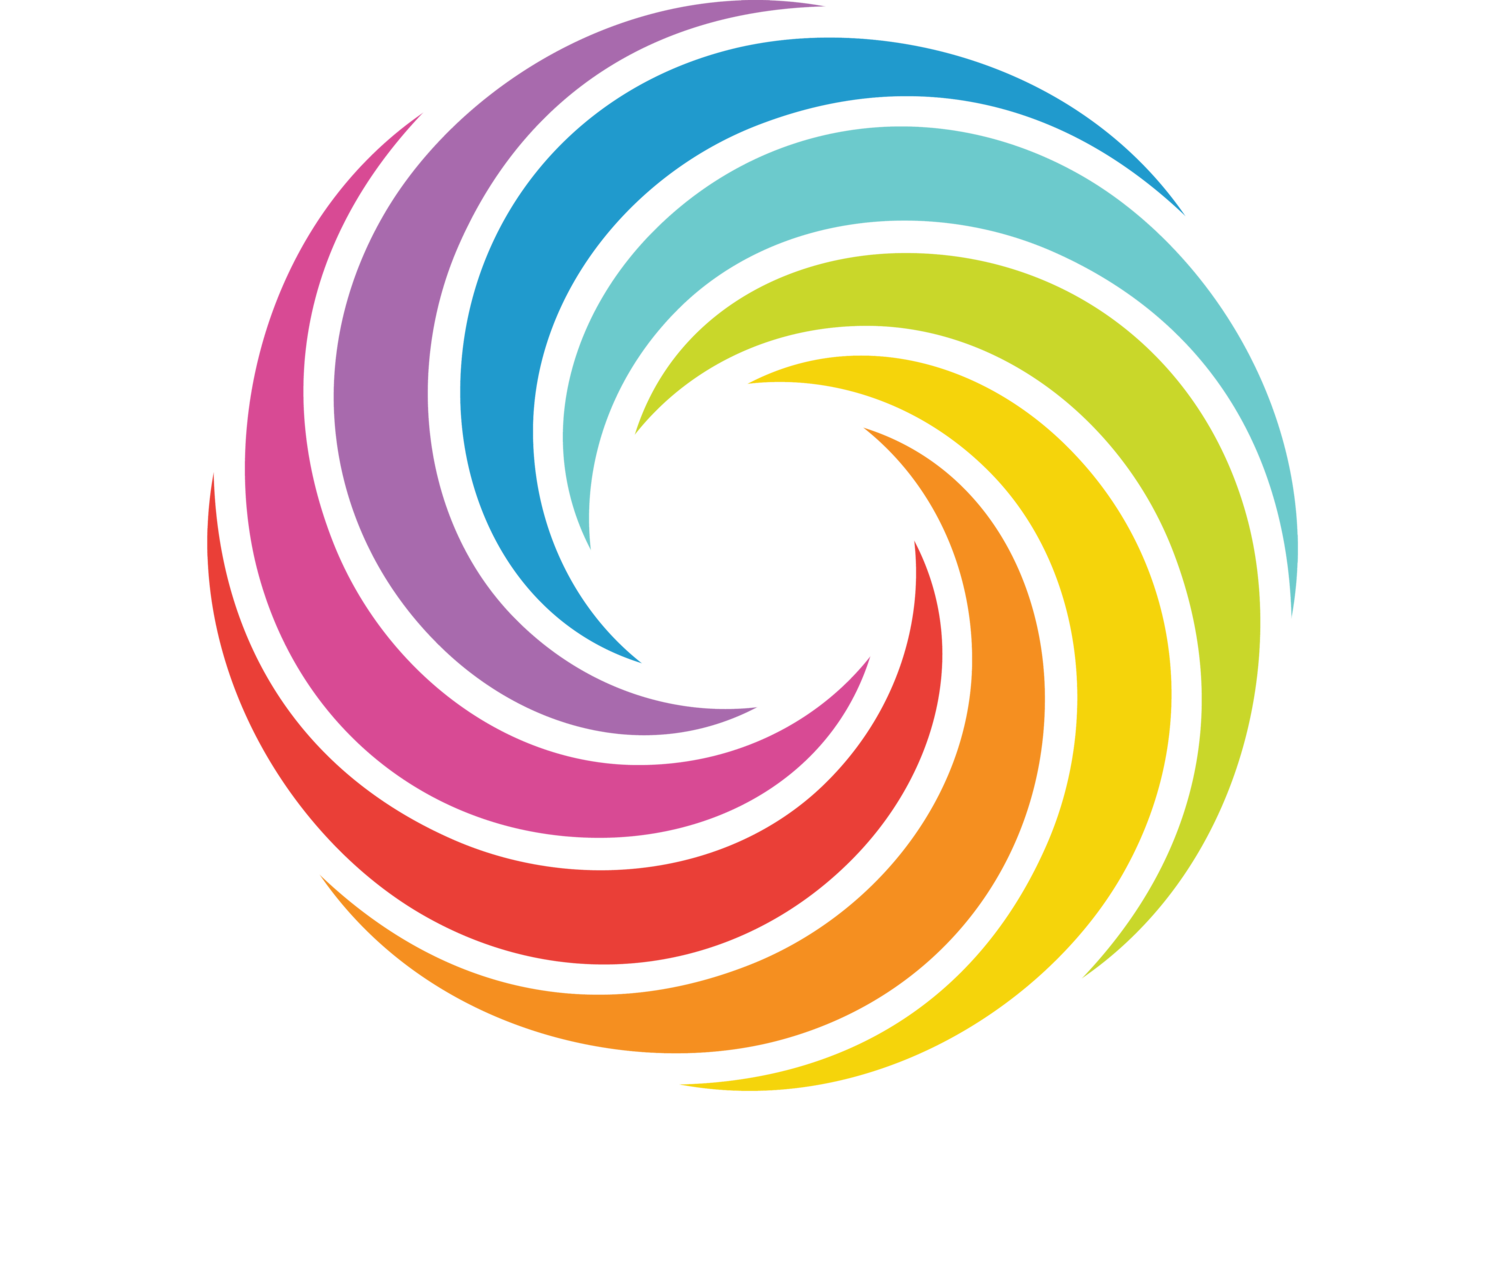 clipart black and white Original rainbow bagels bagel. Mcdonalds clipart neon